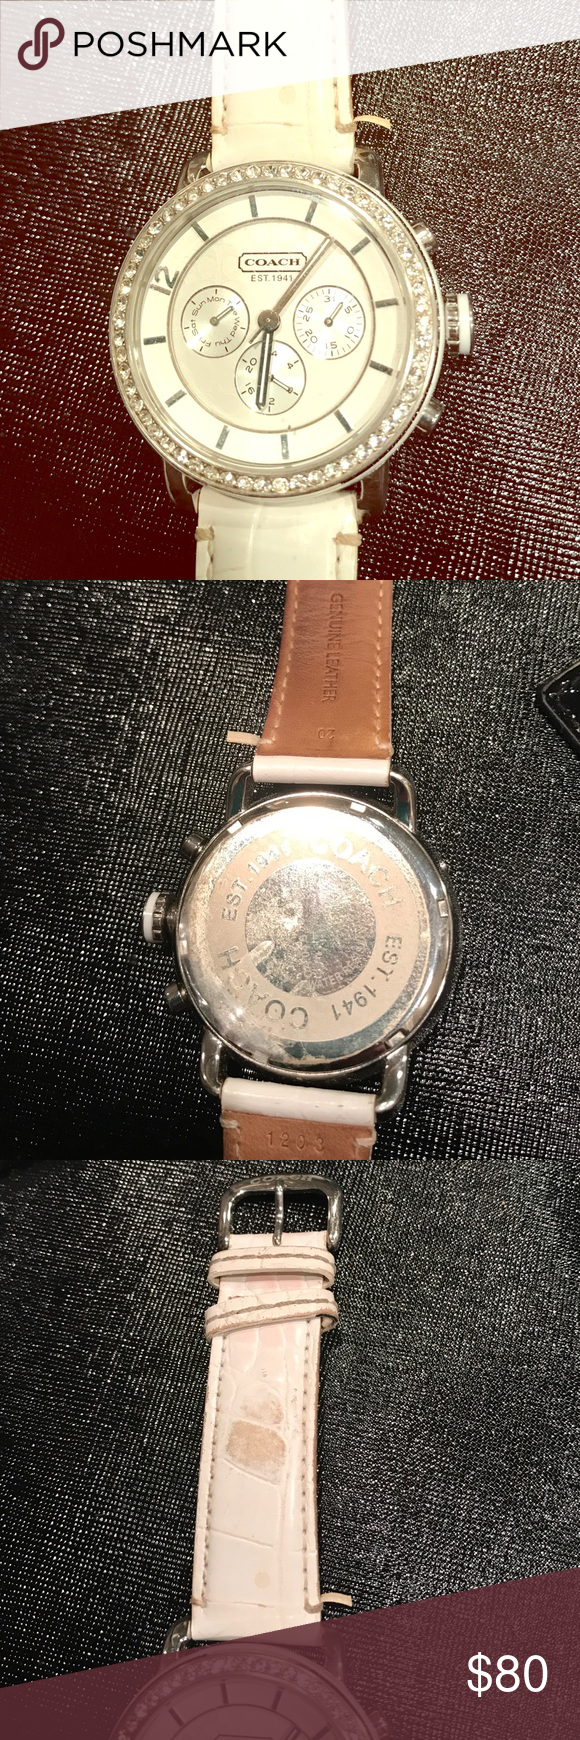 Authentic Coach watch White Coach watch with embellishments around it. Band is worn as shown. Also the hands seem to be a little lose, easy fix for a jeweler. Coach Accessories Watches